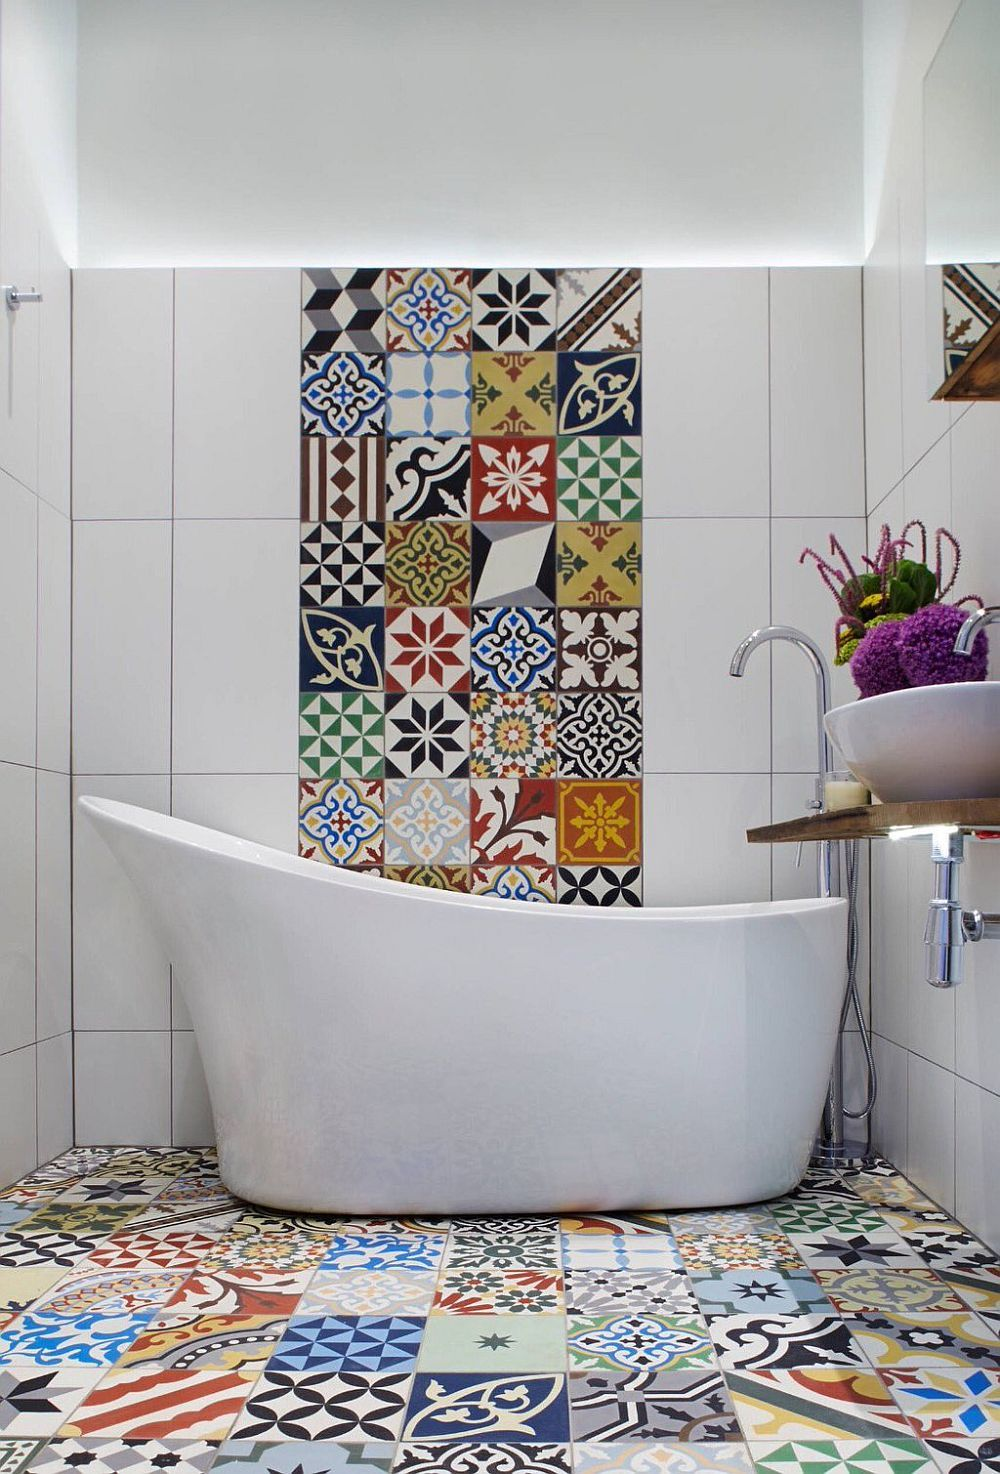 25 creative patchwork tile ideas full of color and pattern 25 creative patchwork tile ideas full of color and pattern dailygadgetfo Image collections